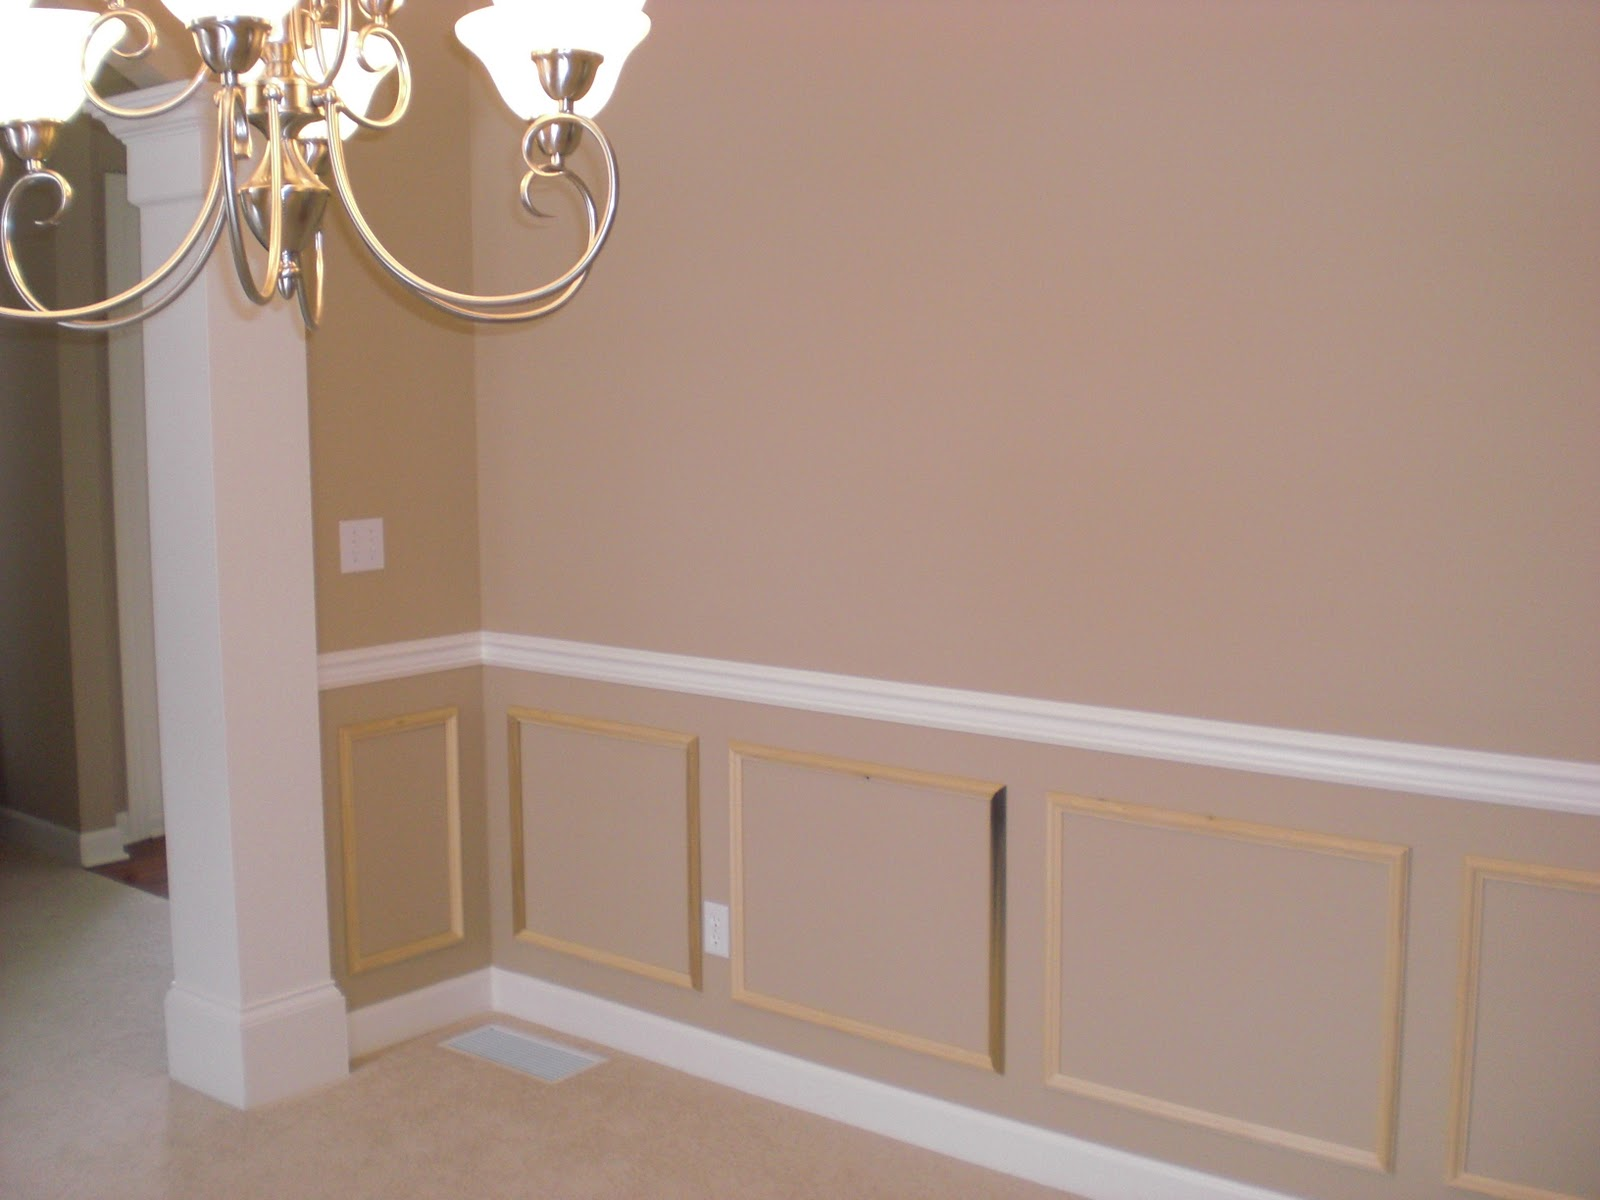 Karen At Home DIY Wainscoting